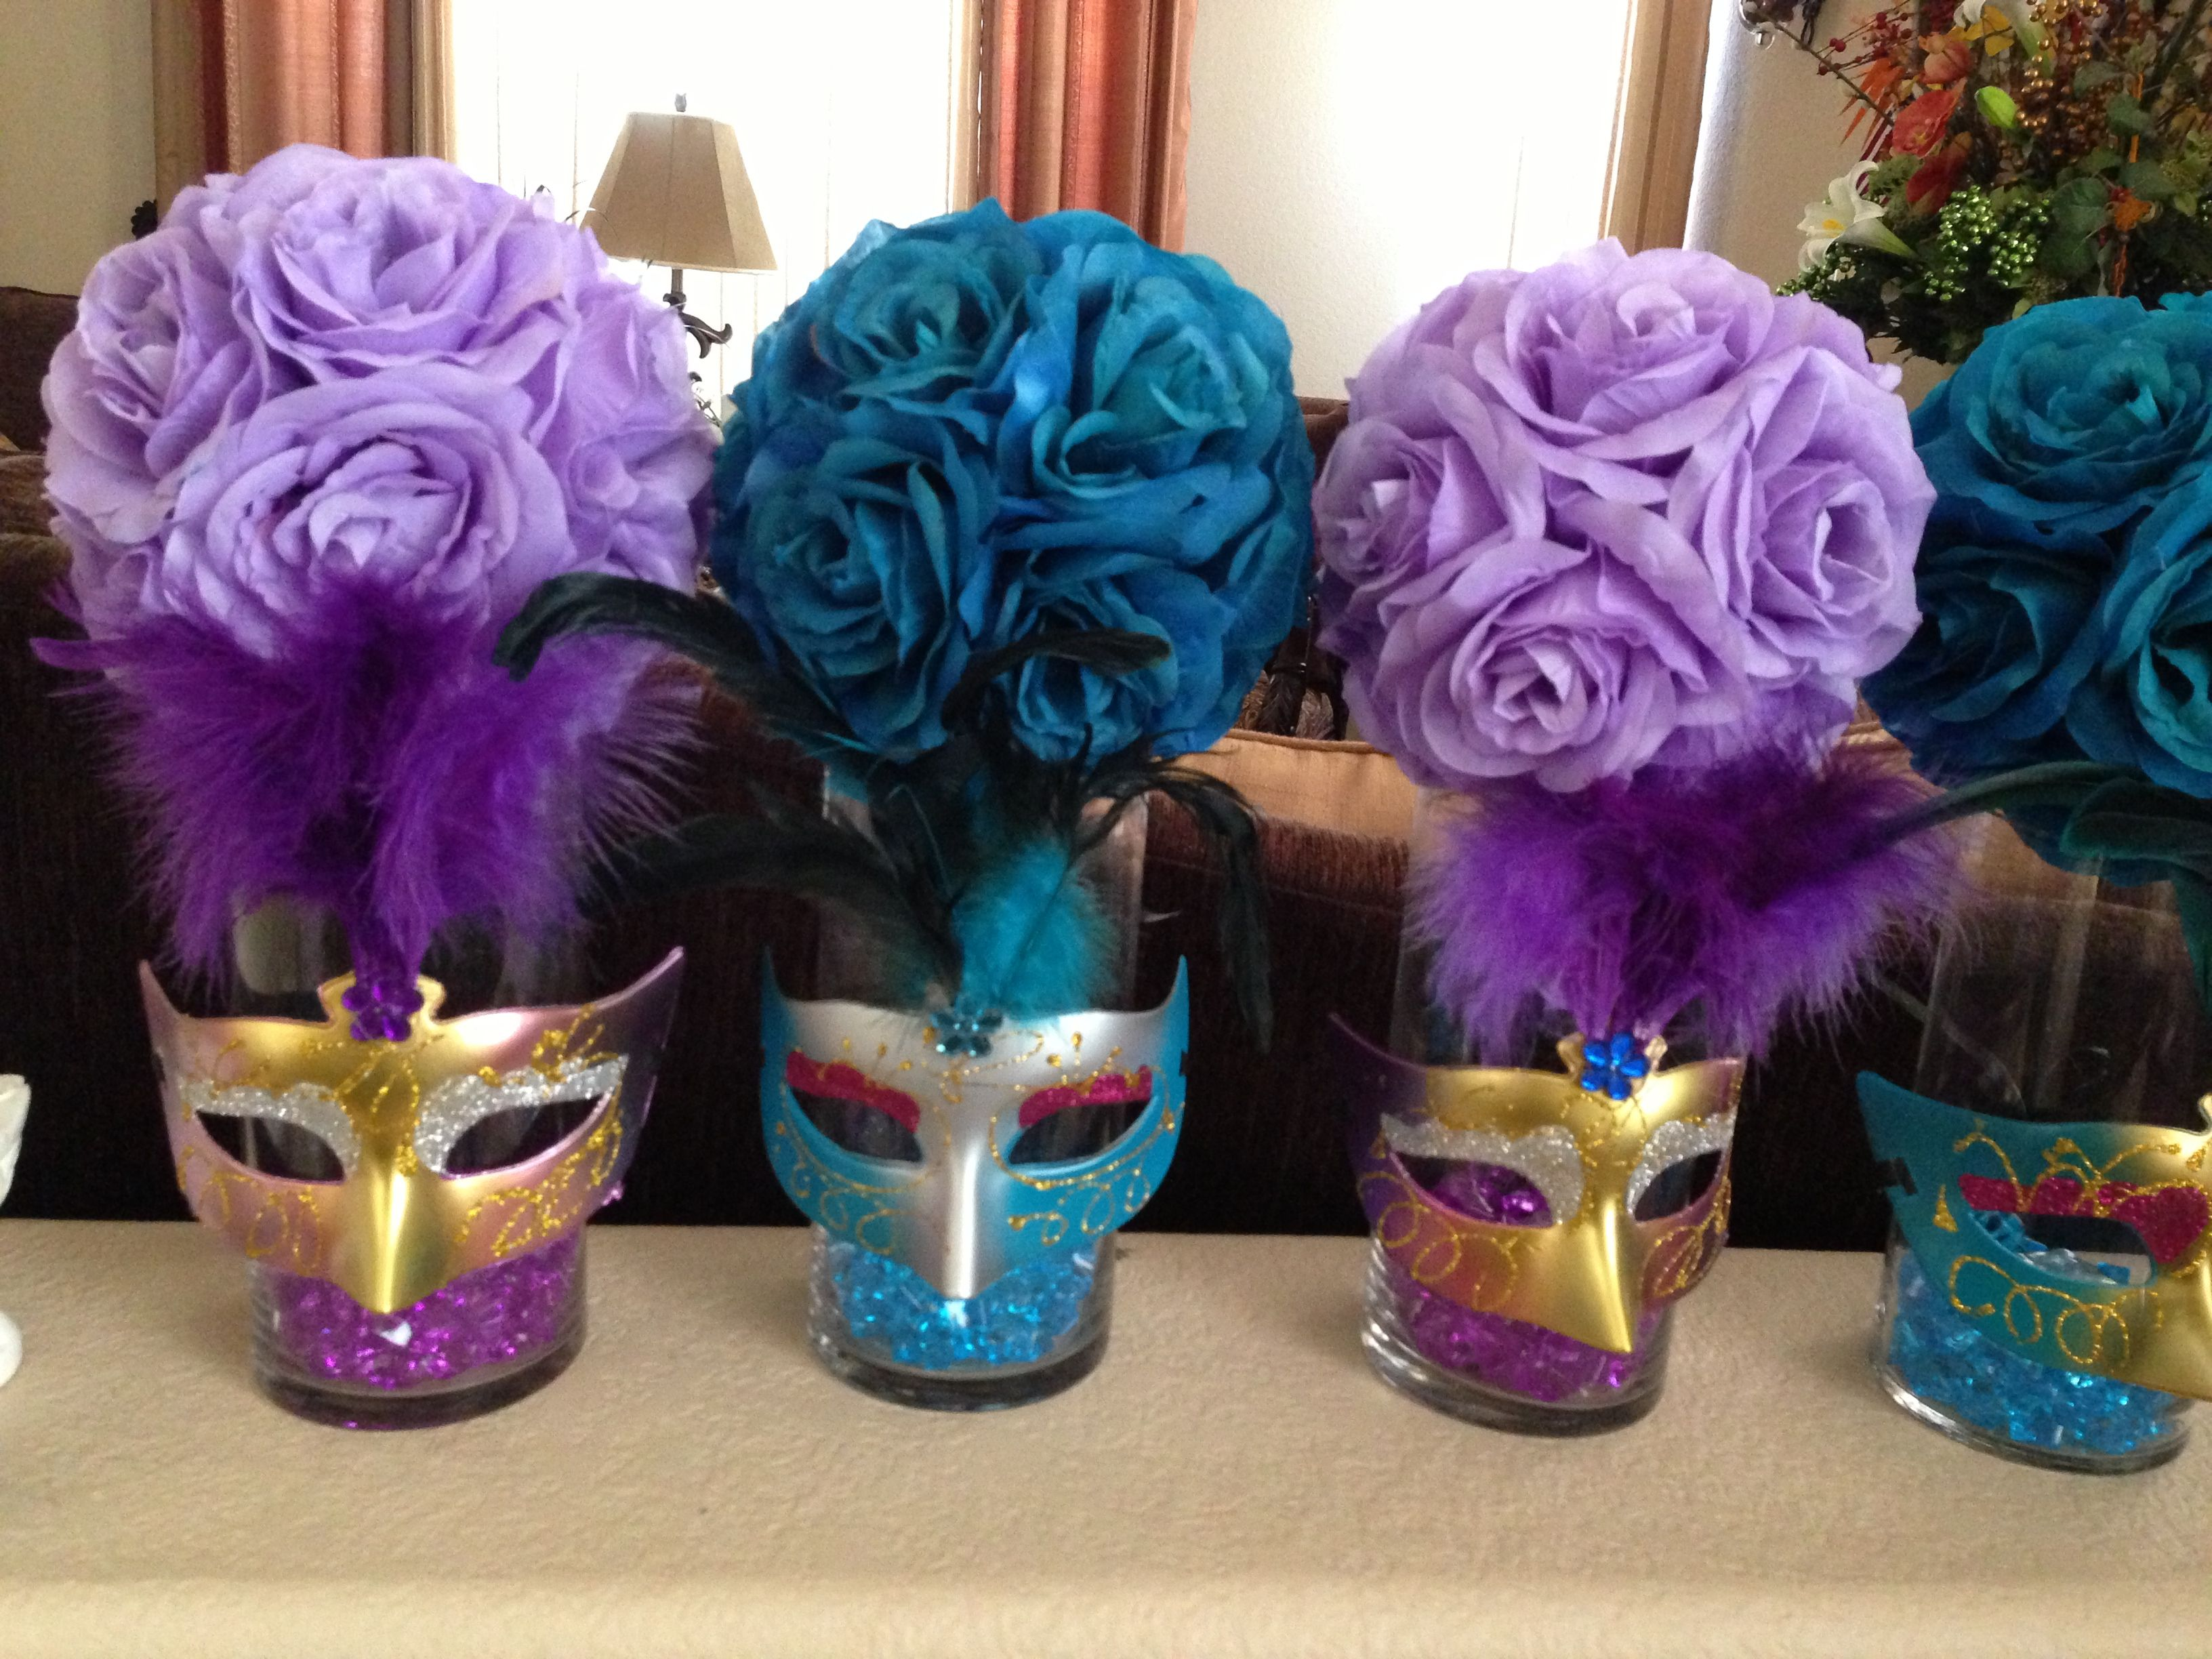 Masquerade decorations you make yourself - Having Alternating Tall And Short Center Pieces Makes The Room Look Larger And More Diverse Masquerade Party Centerpiecesmasquerade